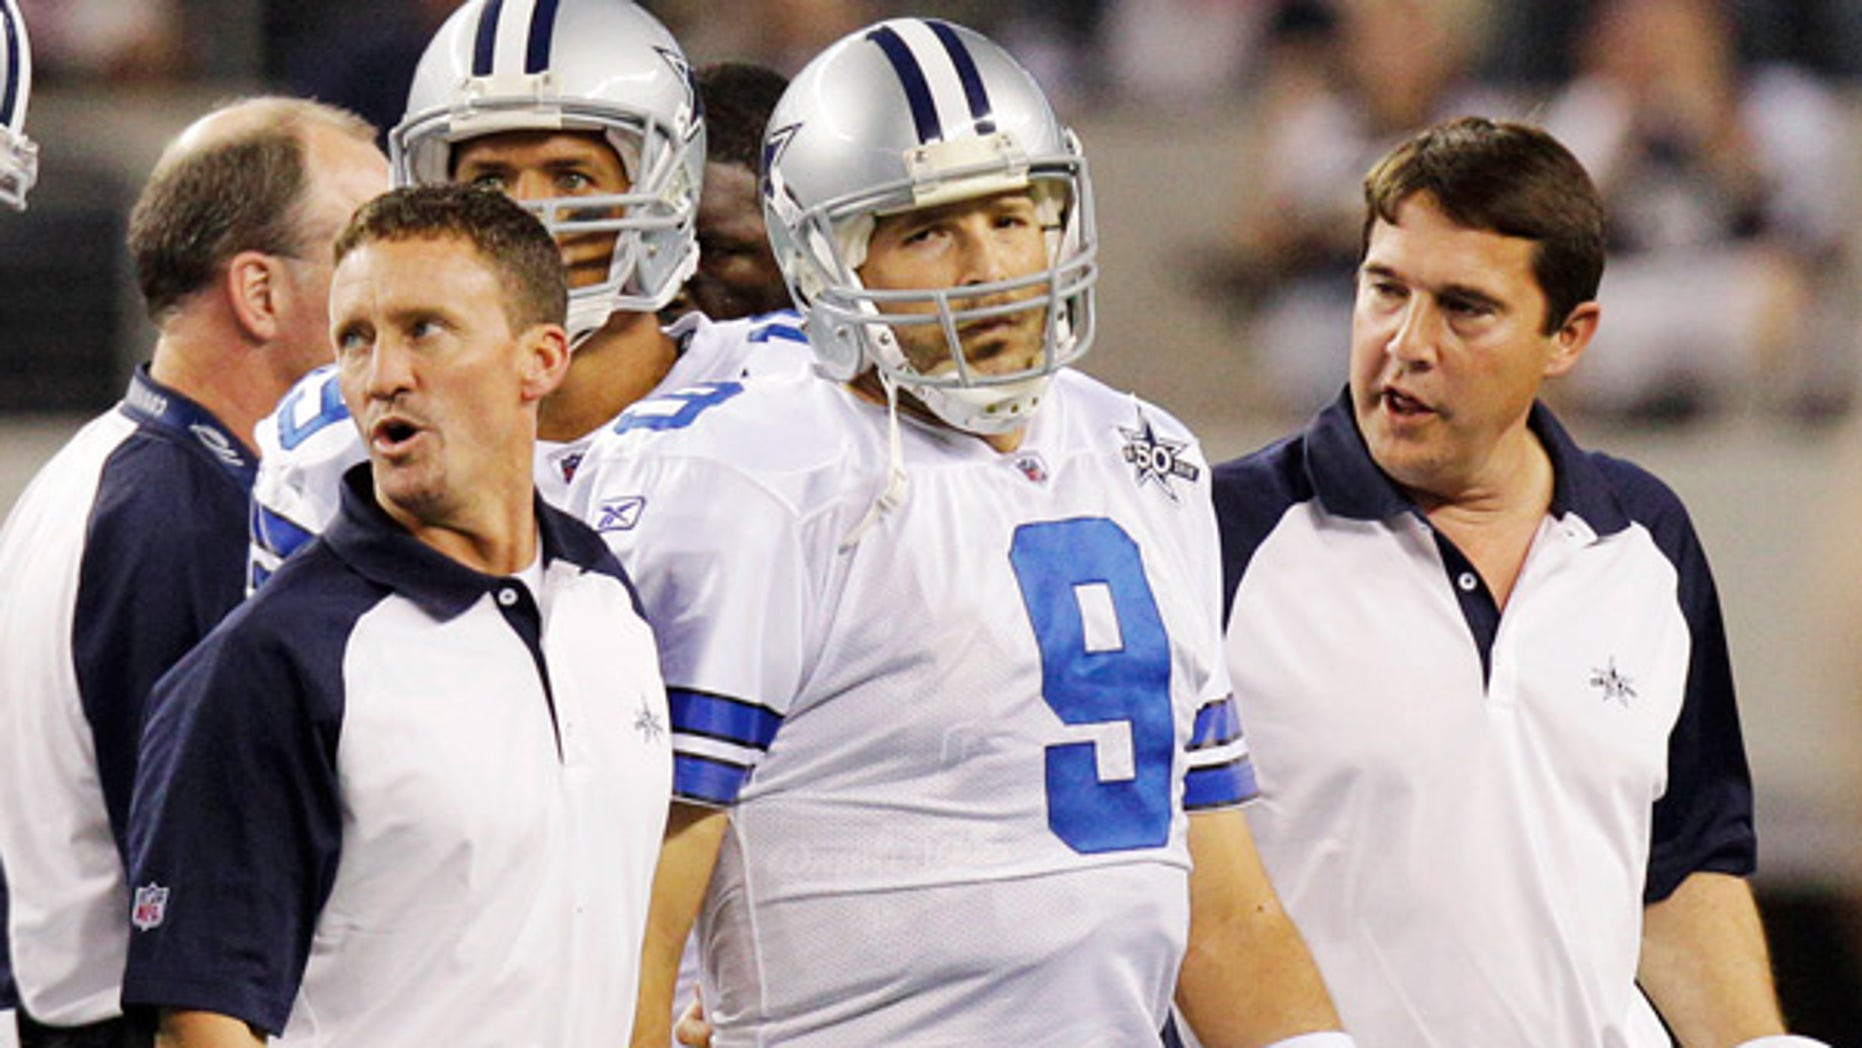 Oct. 25: Cowboys quarterback Tony Romo leaves the field during the second quarter against the Giants.